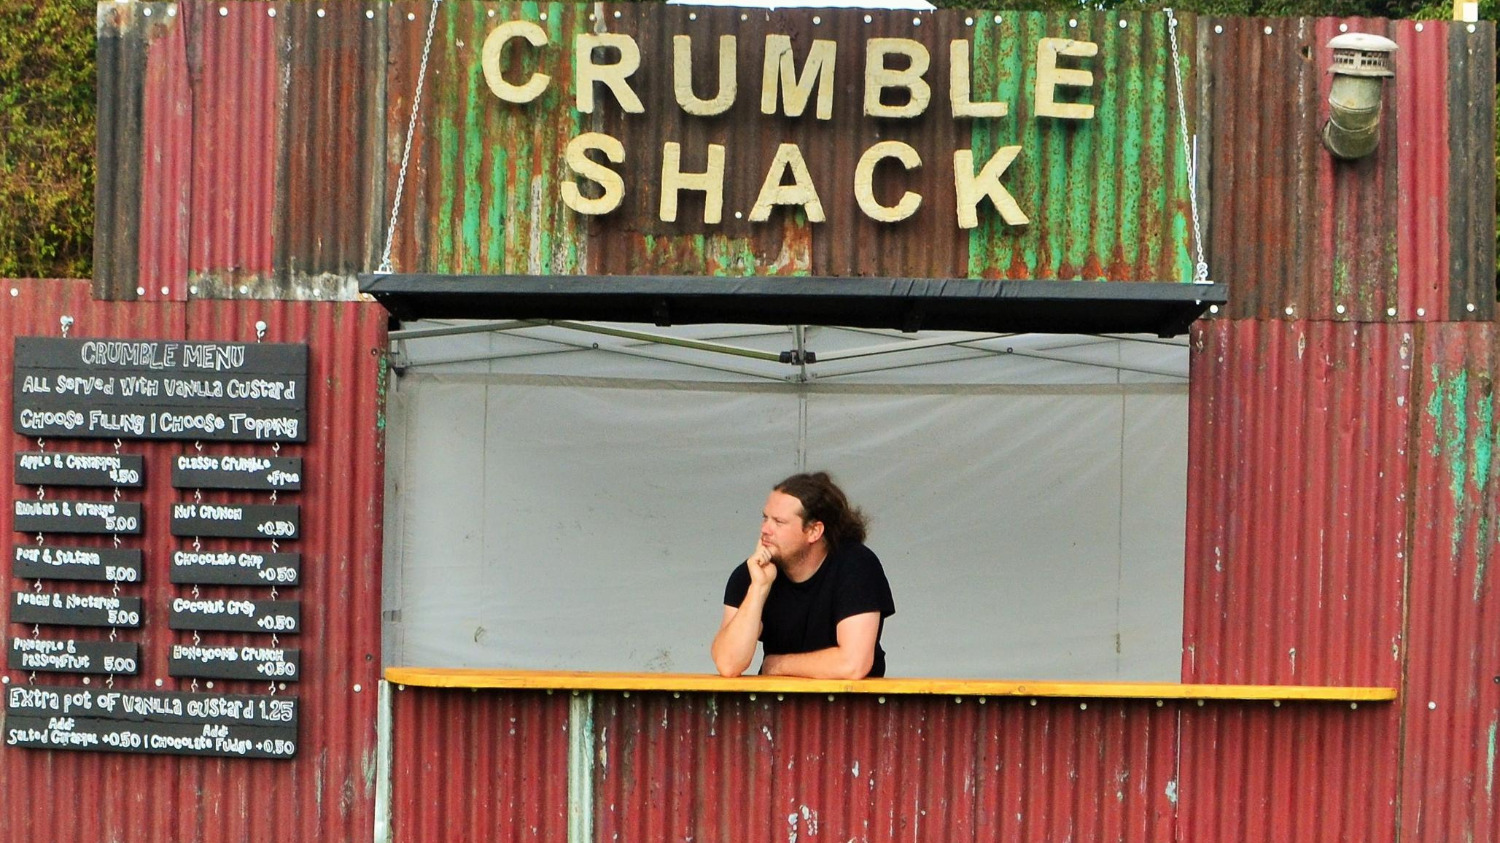 The Original Crumble Shack